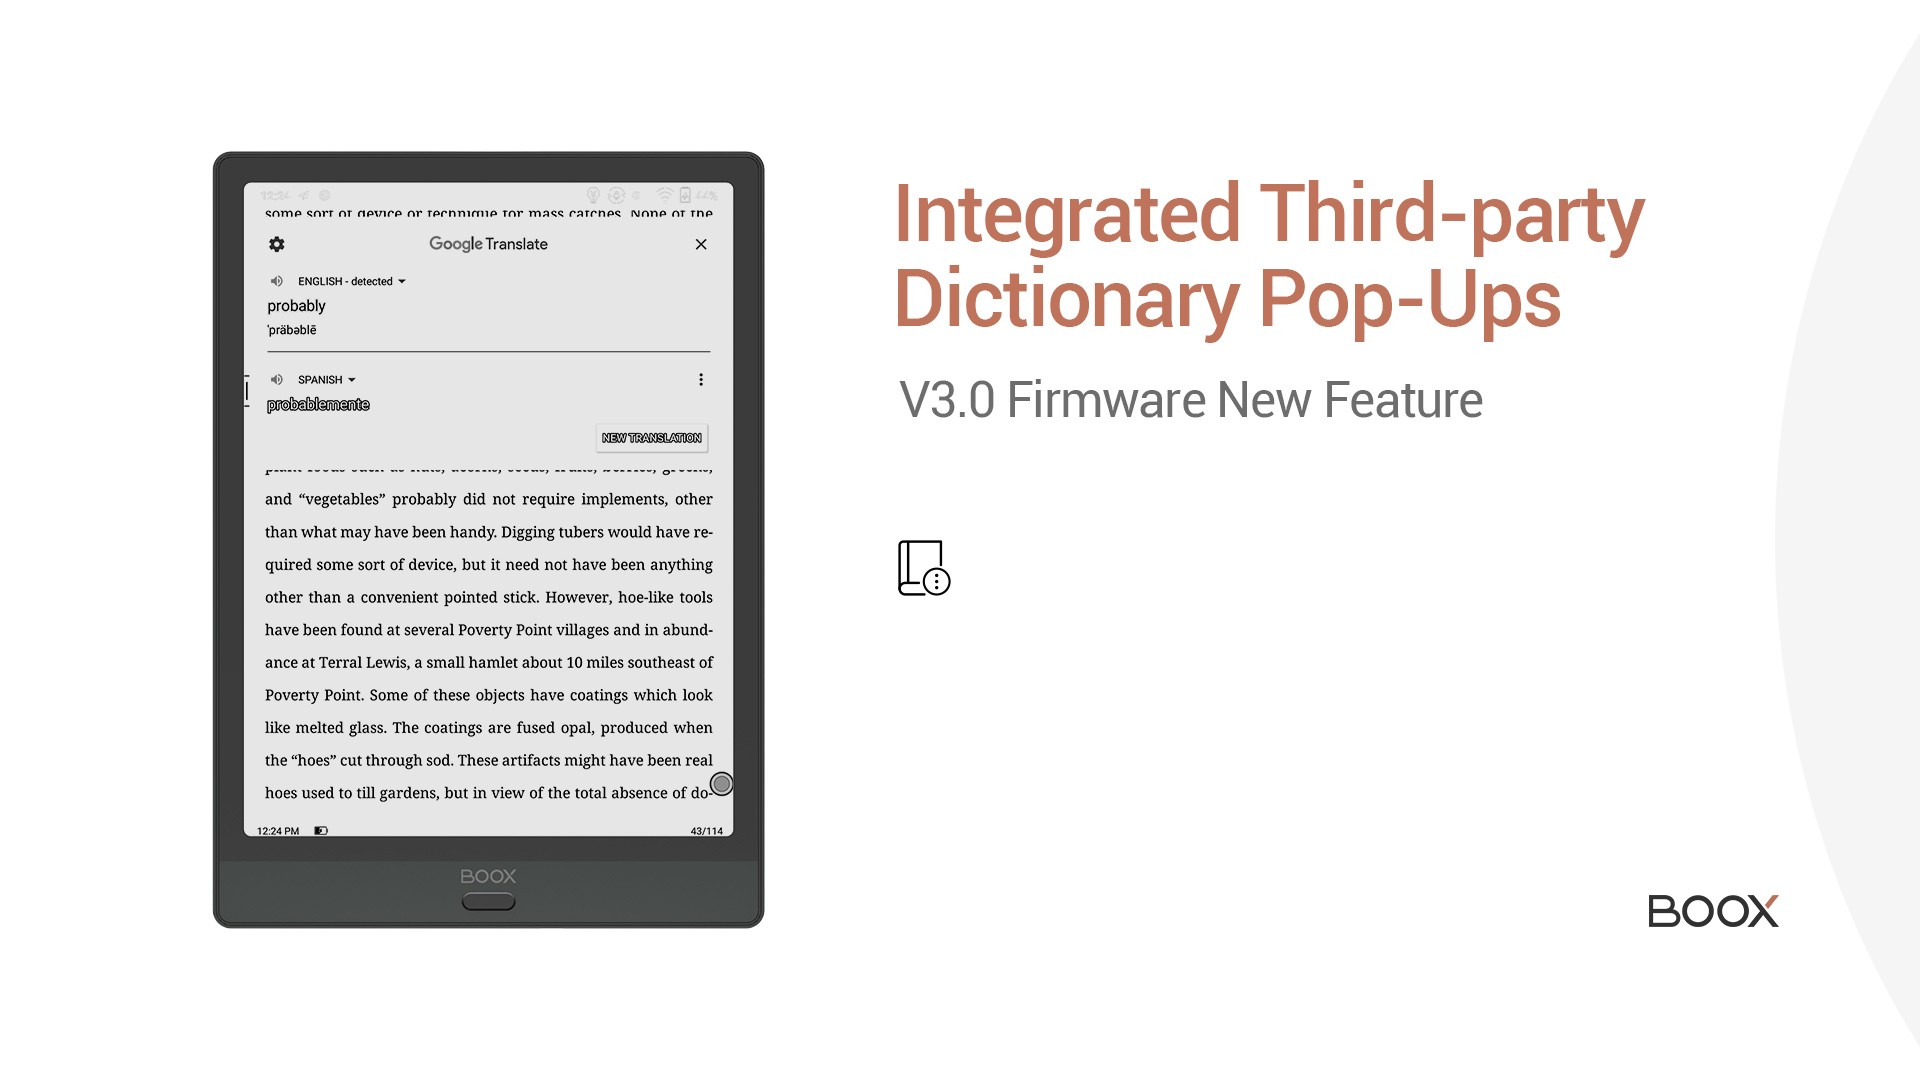 Integrated third-party dictionaries popups